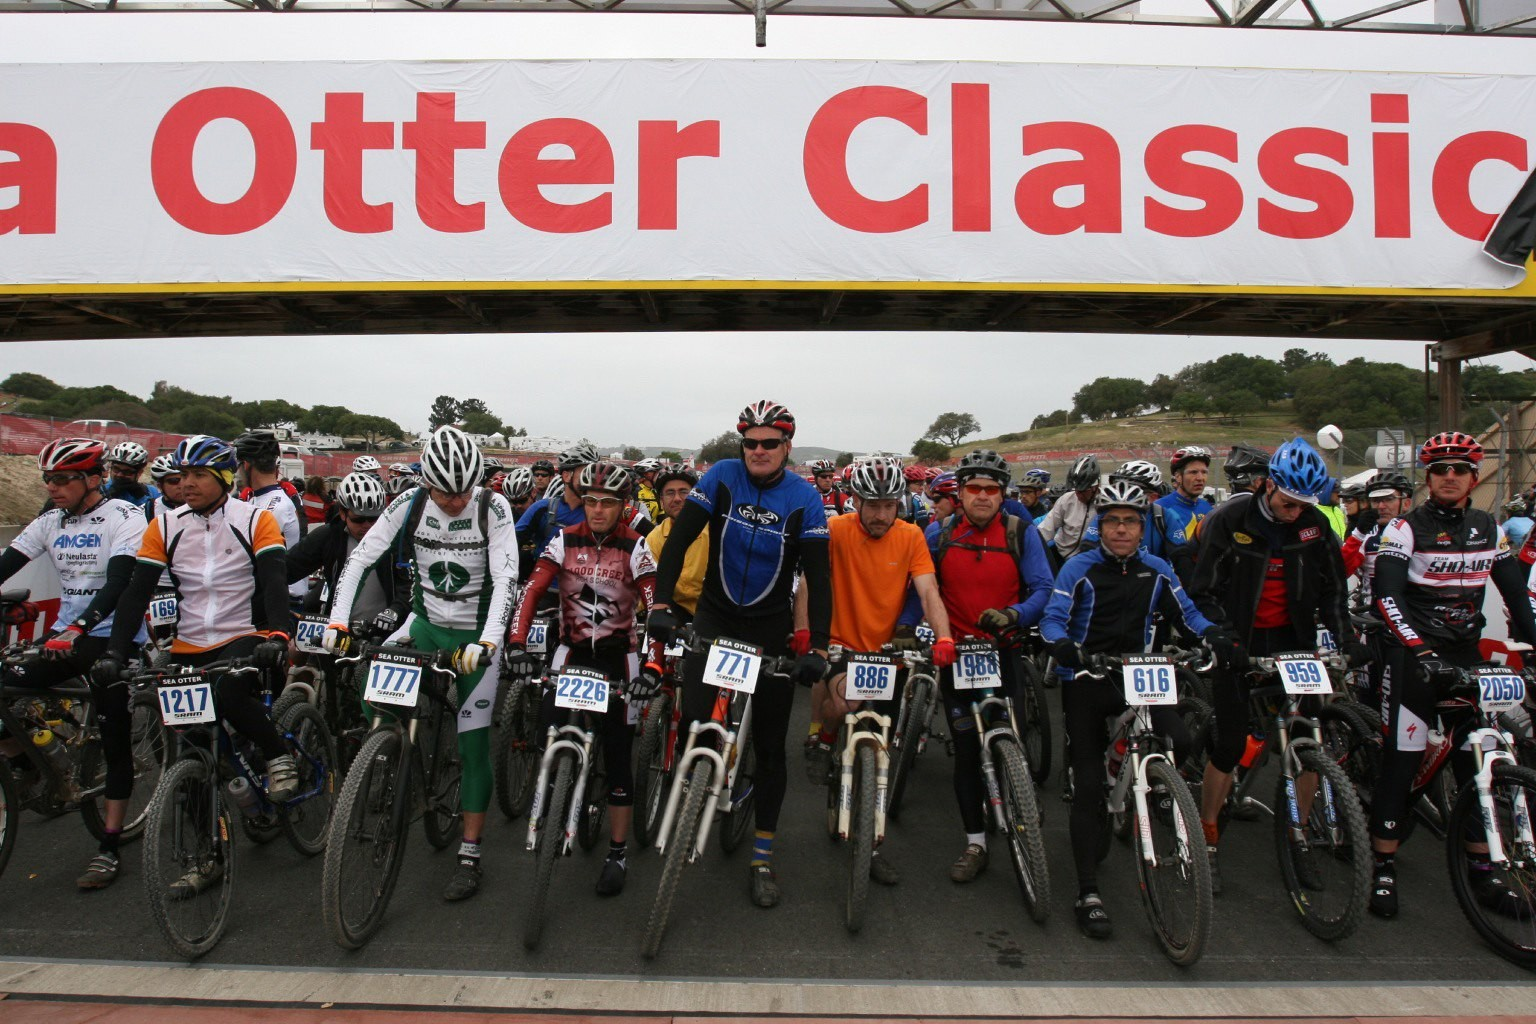 The Sea Otter Classic is expanding its cross country schedule this April.